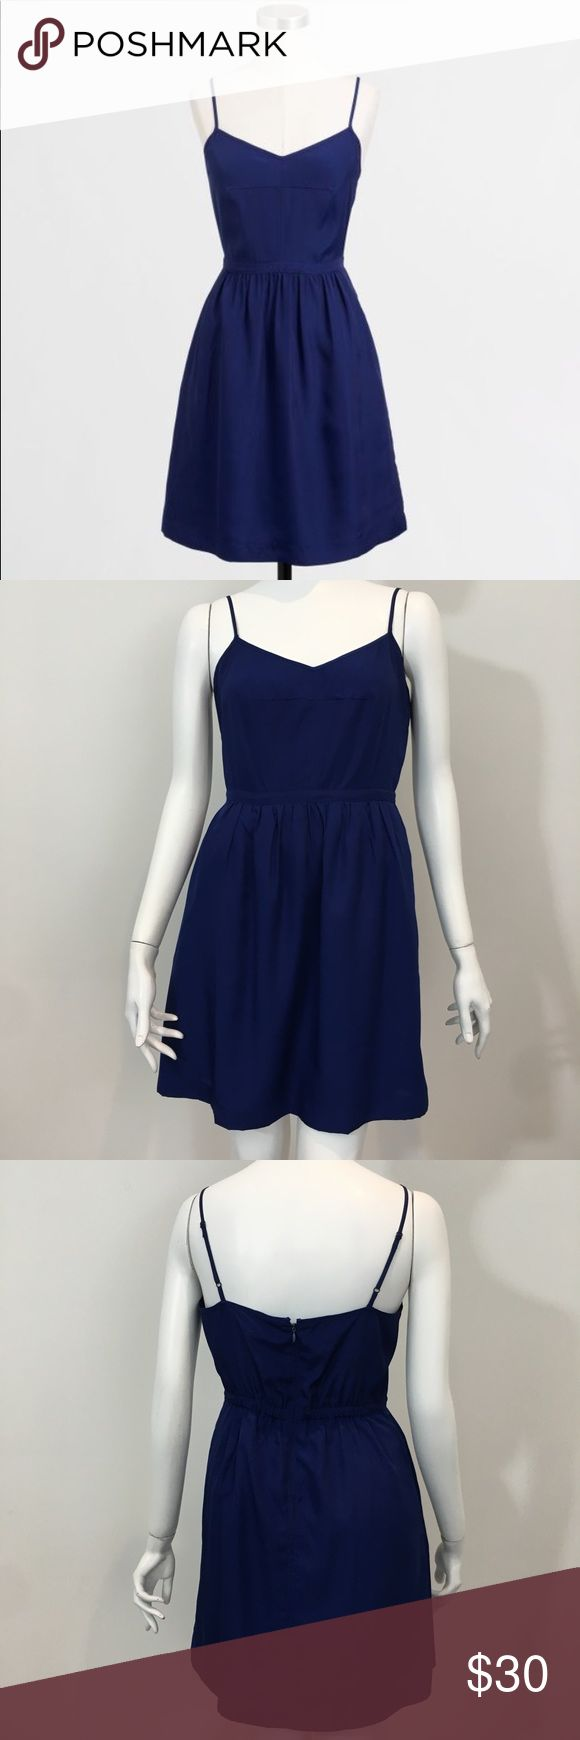 """J. Crew Classic Blue Cami Dress Size 4 Beautiful J. Crew Classic Cami Dress  Excellent used condition no flaws  Size 4  Bust: 16"""" Length: 32"""" Waist: 14"""" Navy Blue  Adjustable spaghetti straps  100% polyester  Fully lined   ☒ Please no low offers or trades.  ツ Bundle & Save! J. Crew Dresses Mini"""